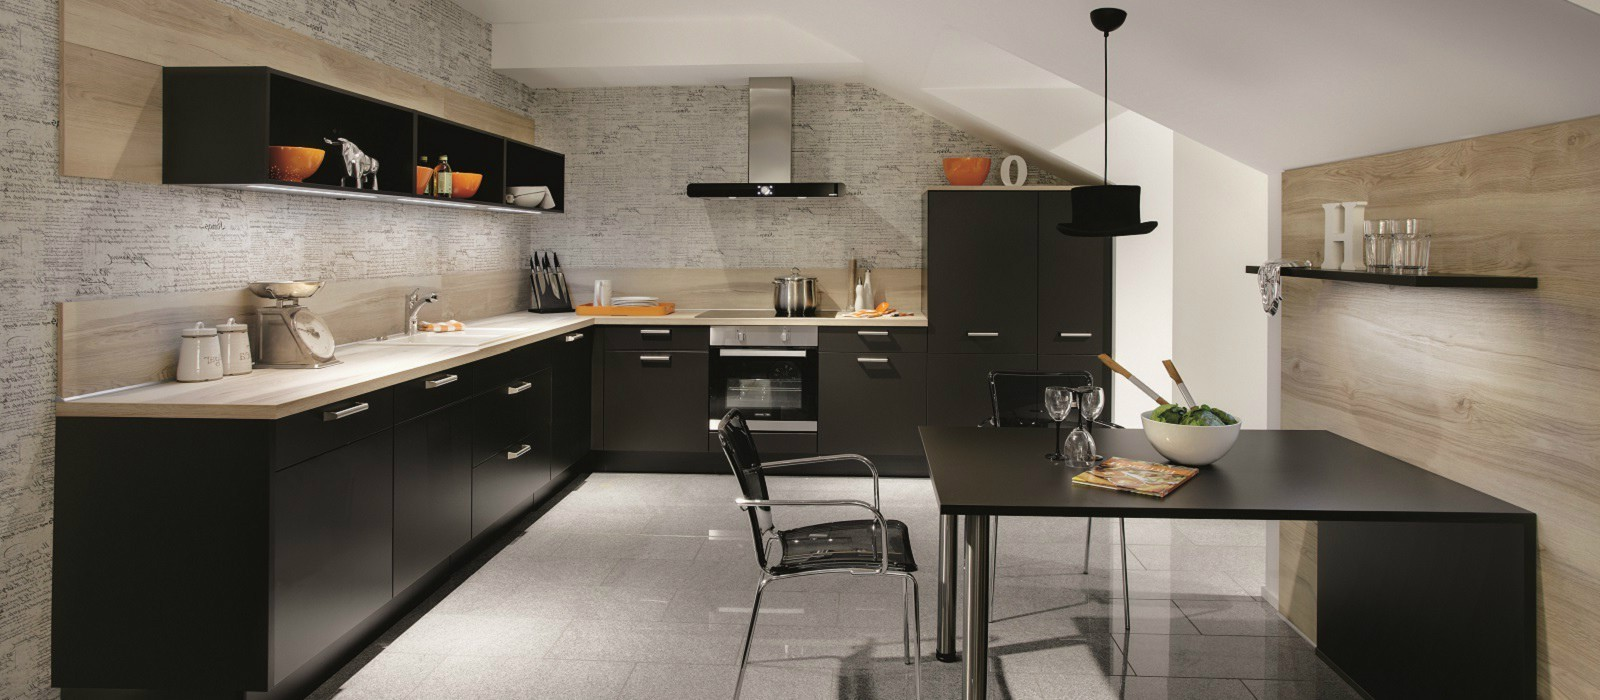 meuble bas de cuisine encastrable cuisine id es de d coration de maison lblaoogbm7. Black Bedroom Furniture Sets. Home Design Ideas